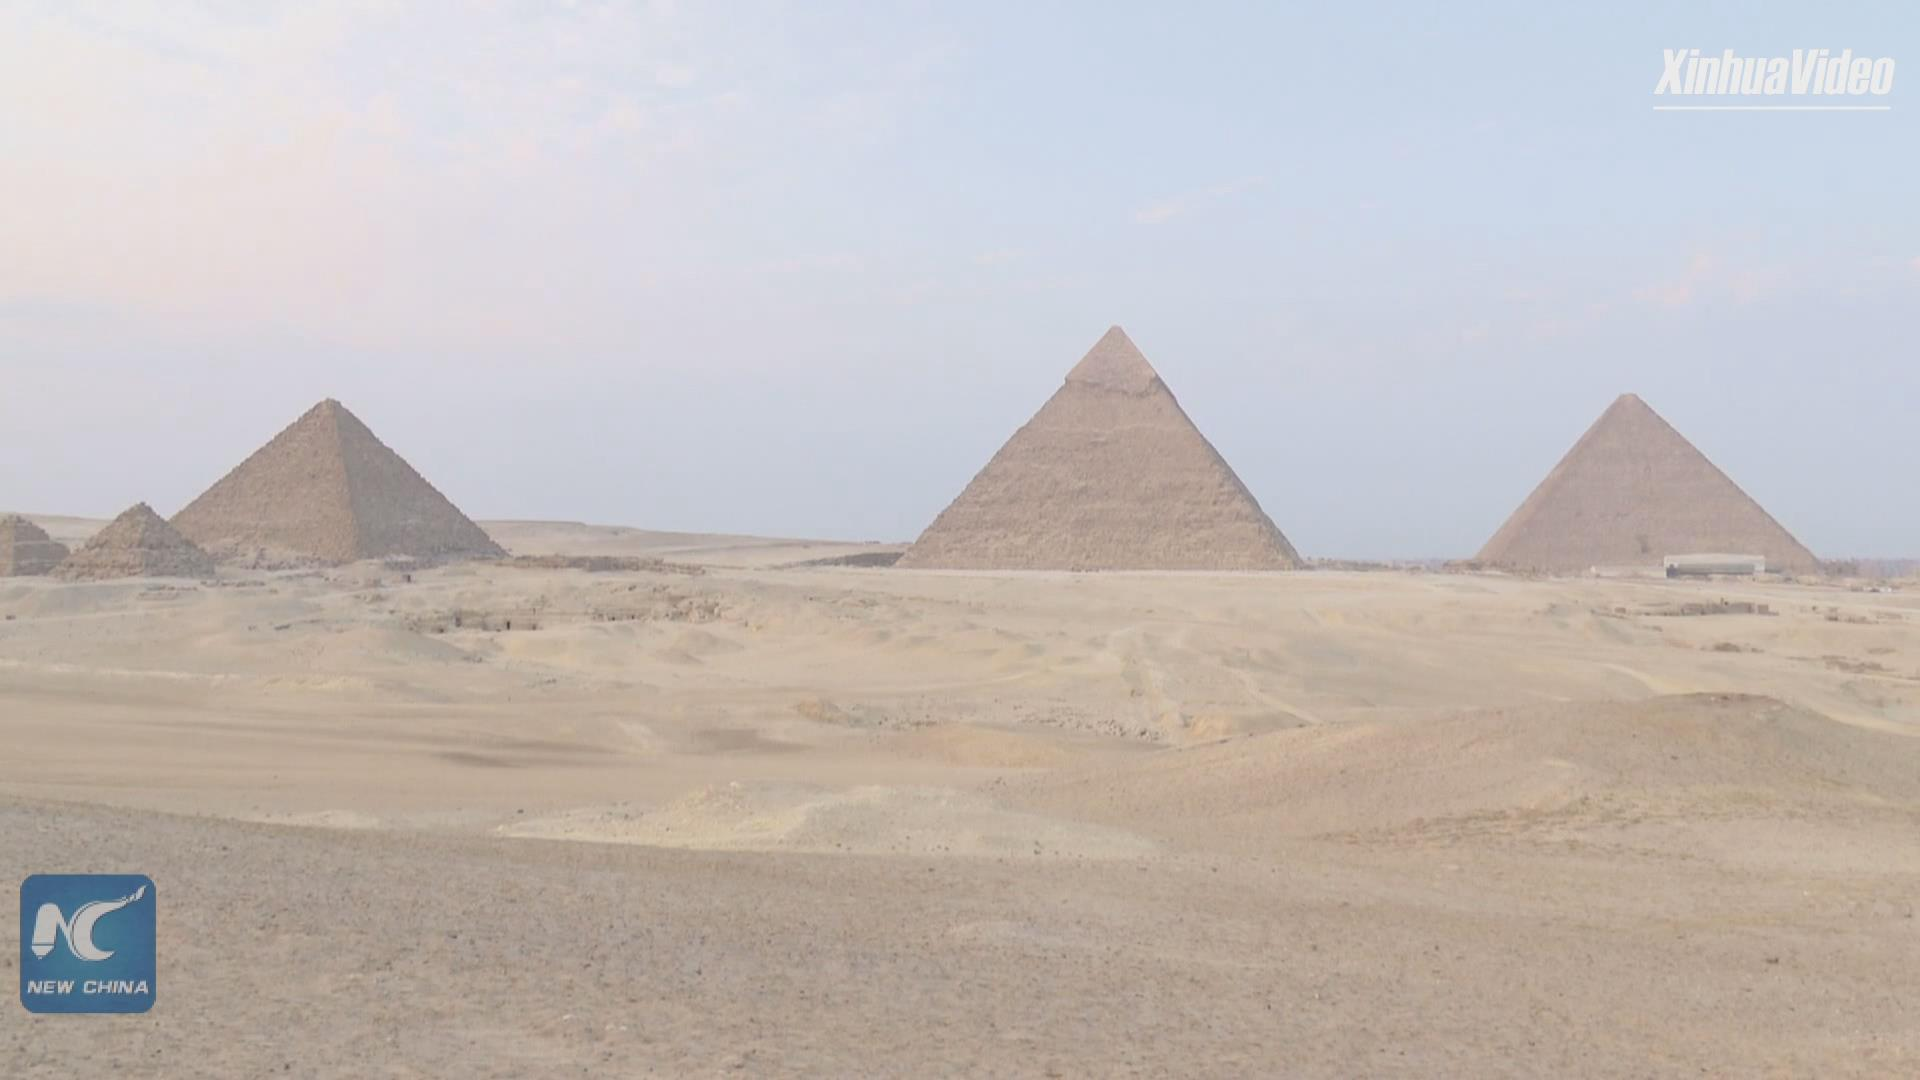 Egyptian art platform plans to hold 1st int'l exhibition at Giza Pyramids in 2021